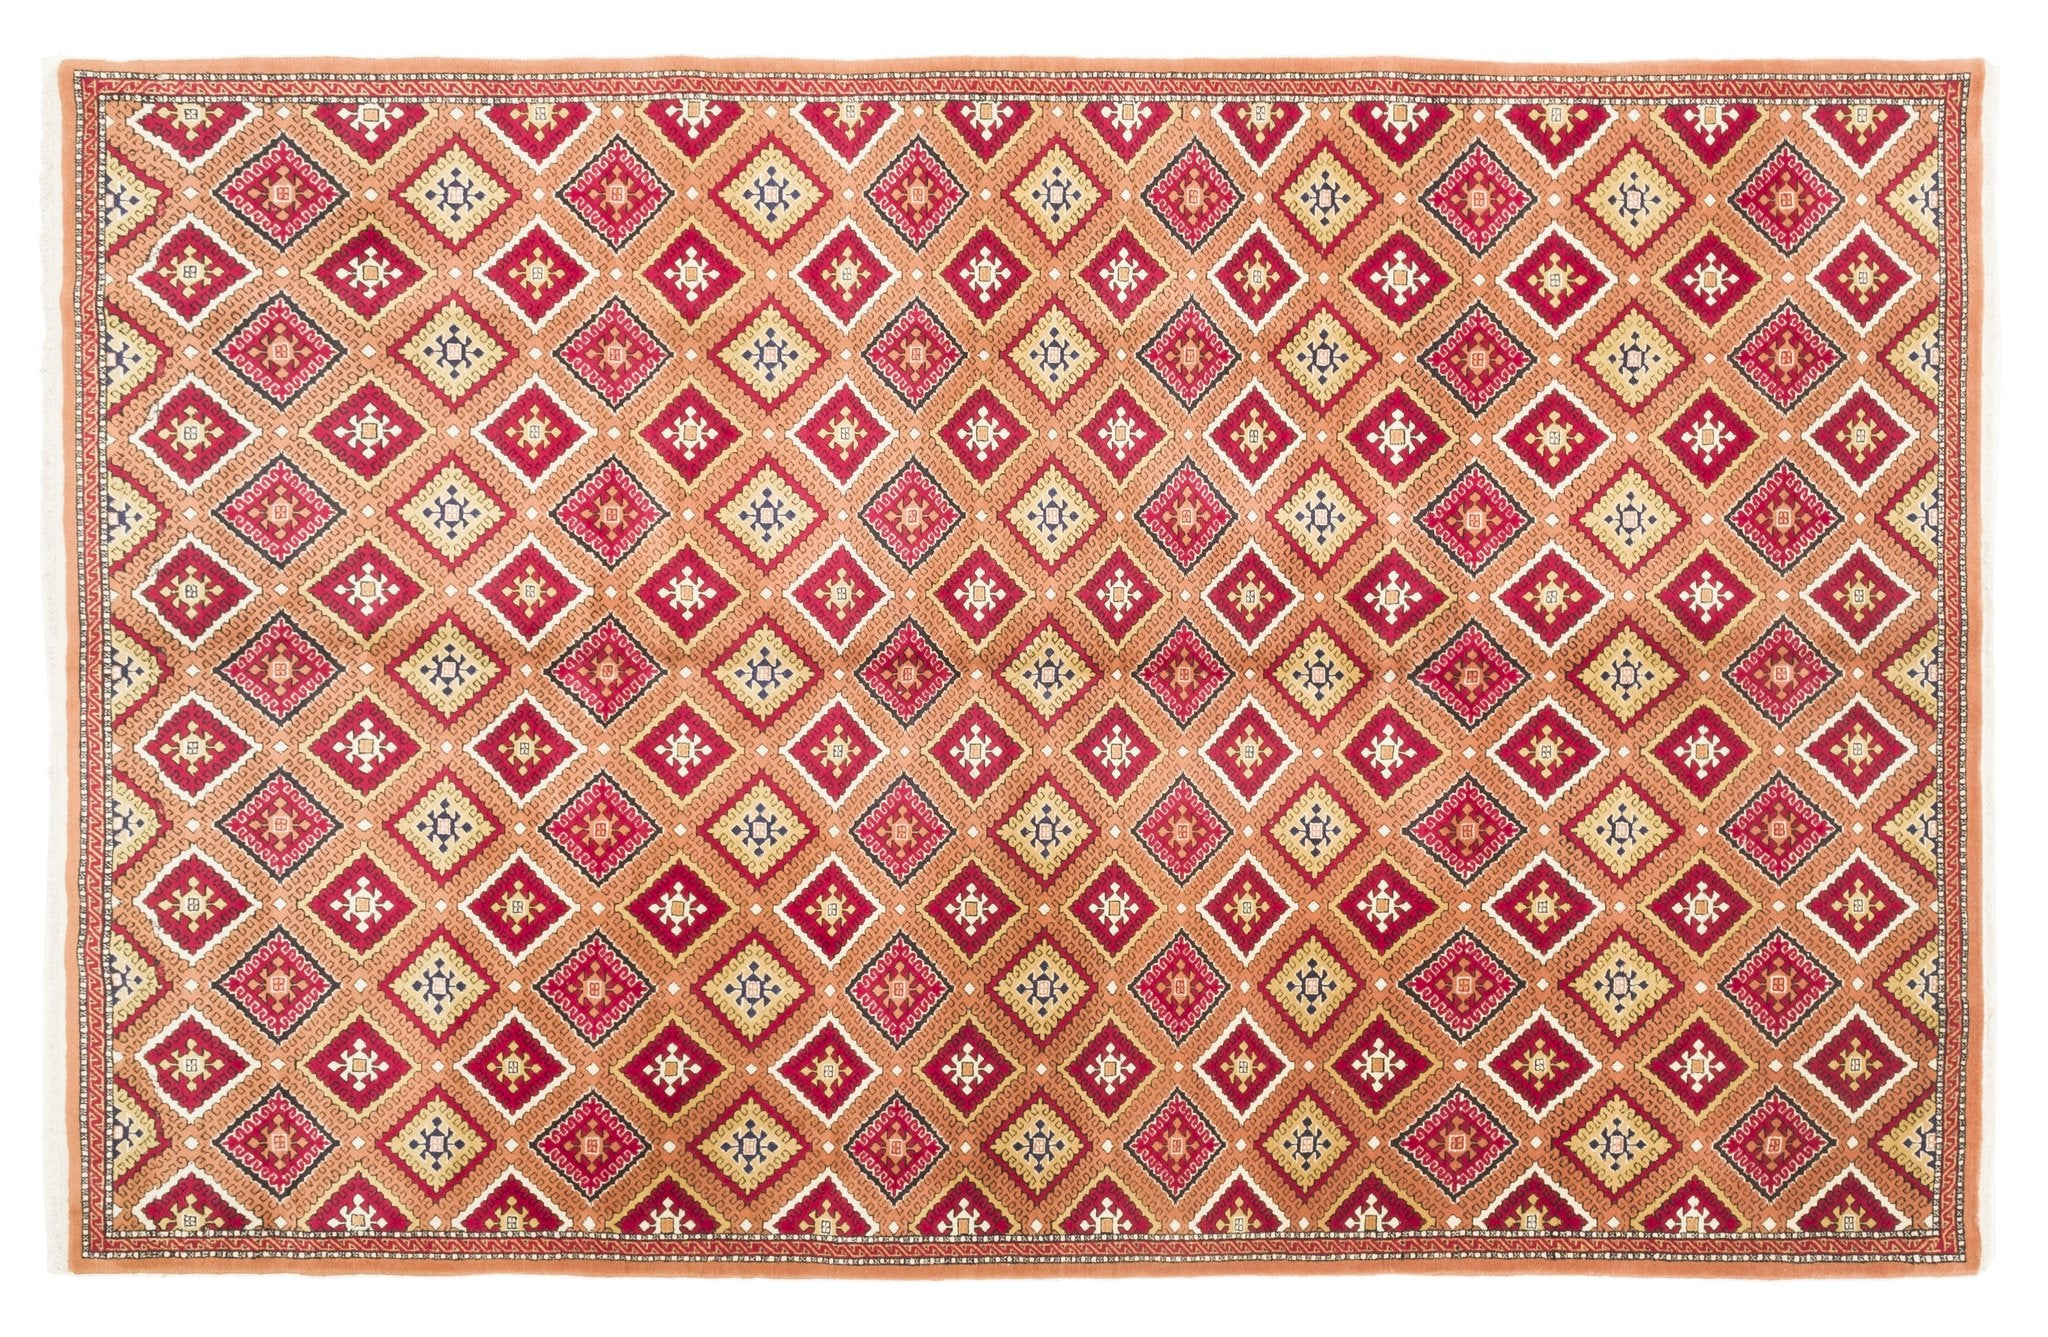 Vintage Turkish Rug Eabha